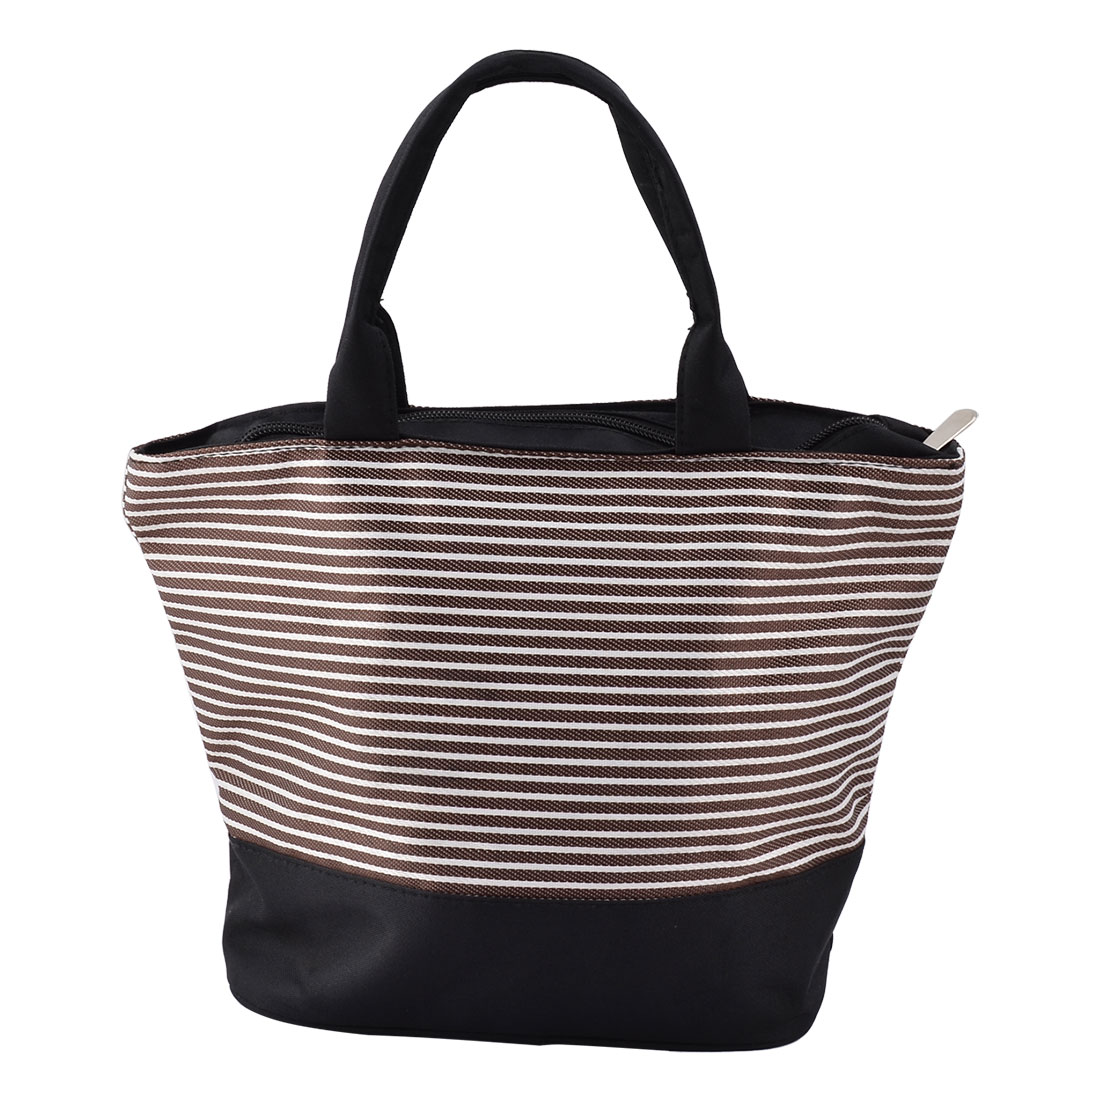 Picnic Oxford Fabric Stripe Print Rectangle Shaped Cooler Tote Bag Coffee Color